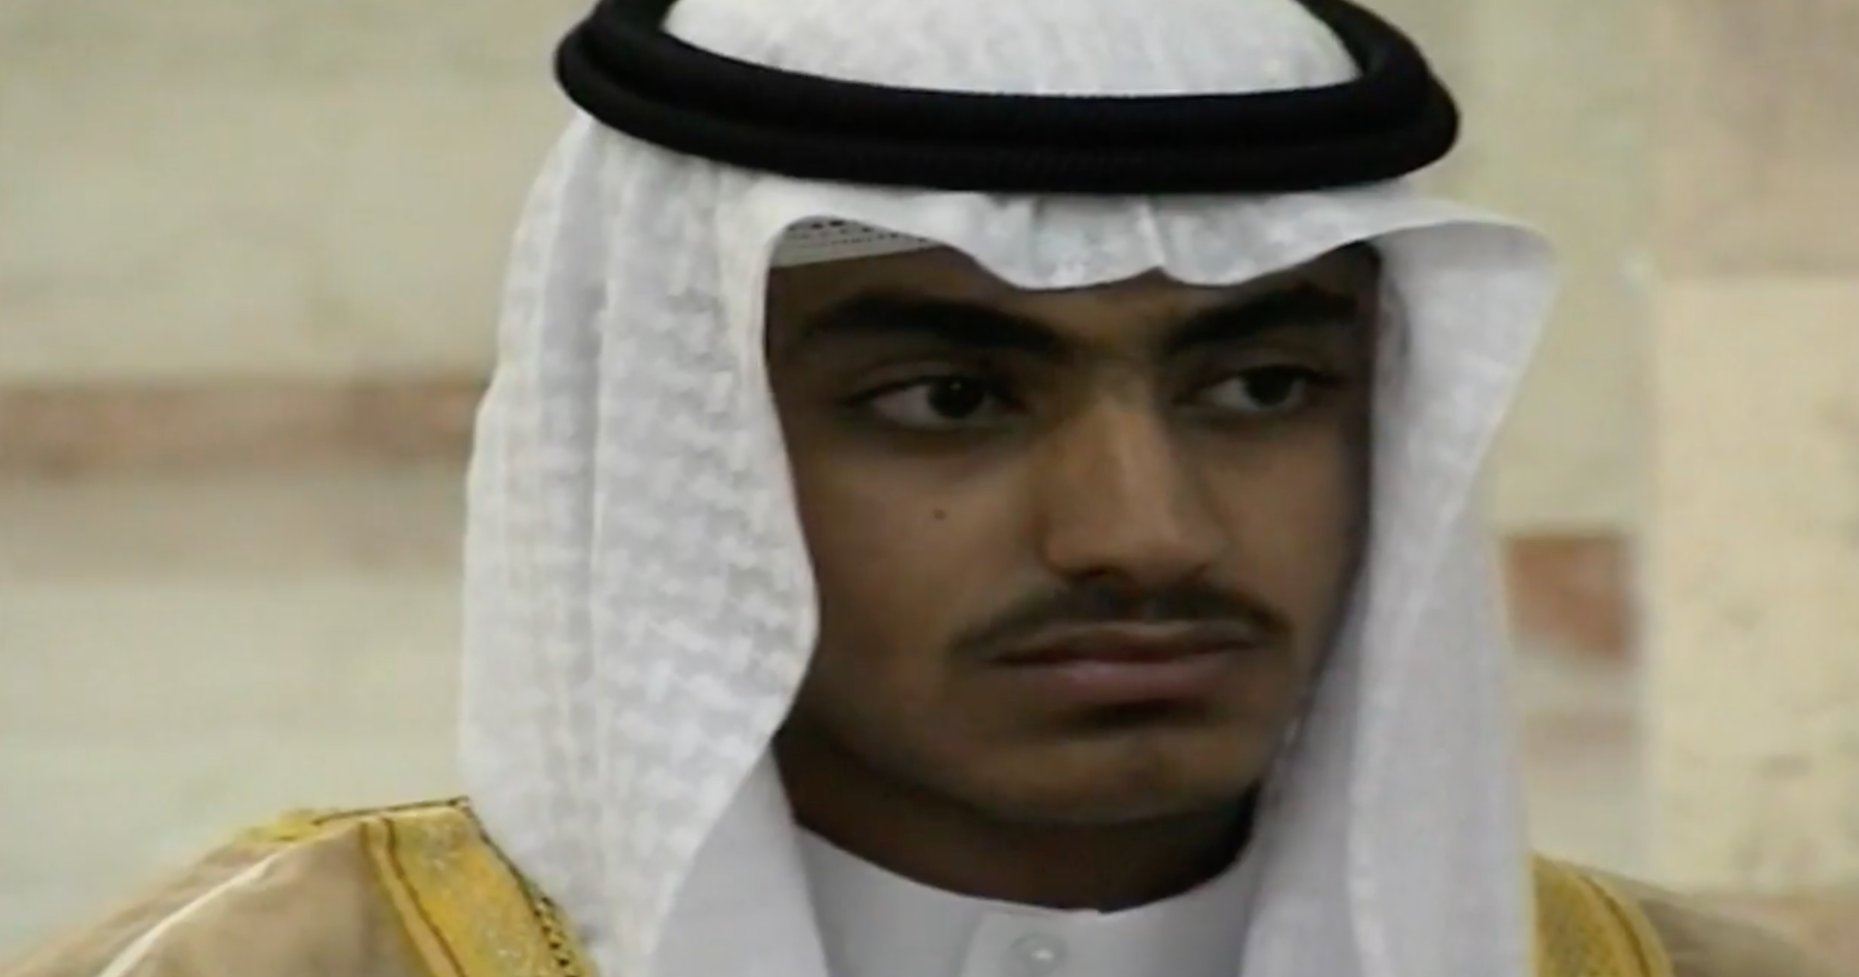 A video released by the CIA November 1 shows the first adult images of Hamza bin Laden, the son of late al-Qaeda leader Osama bin Laden.